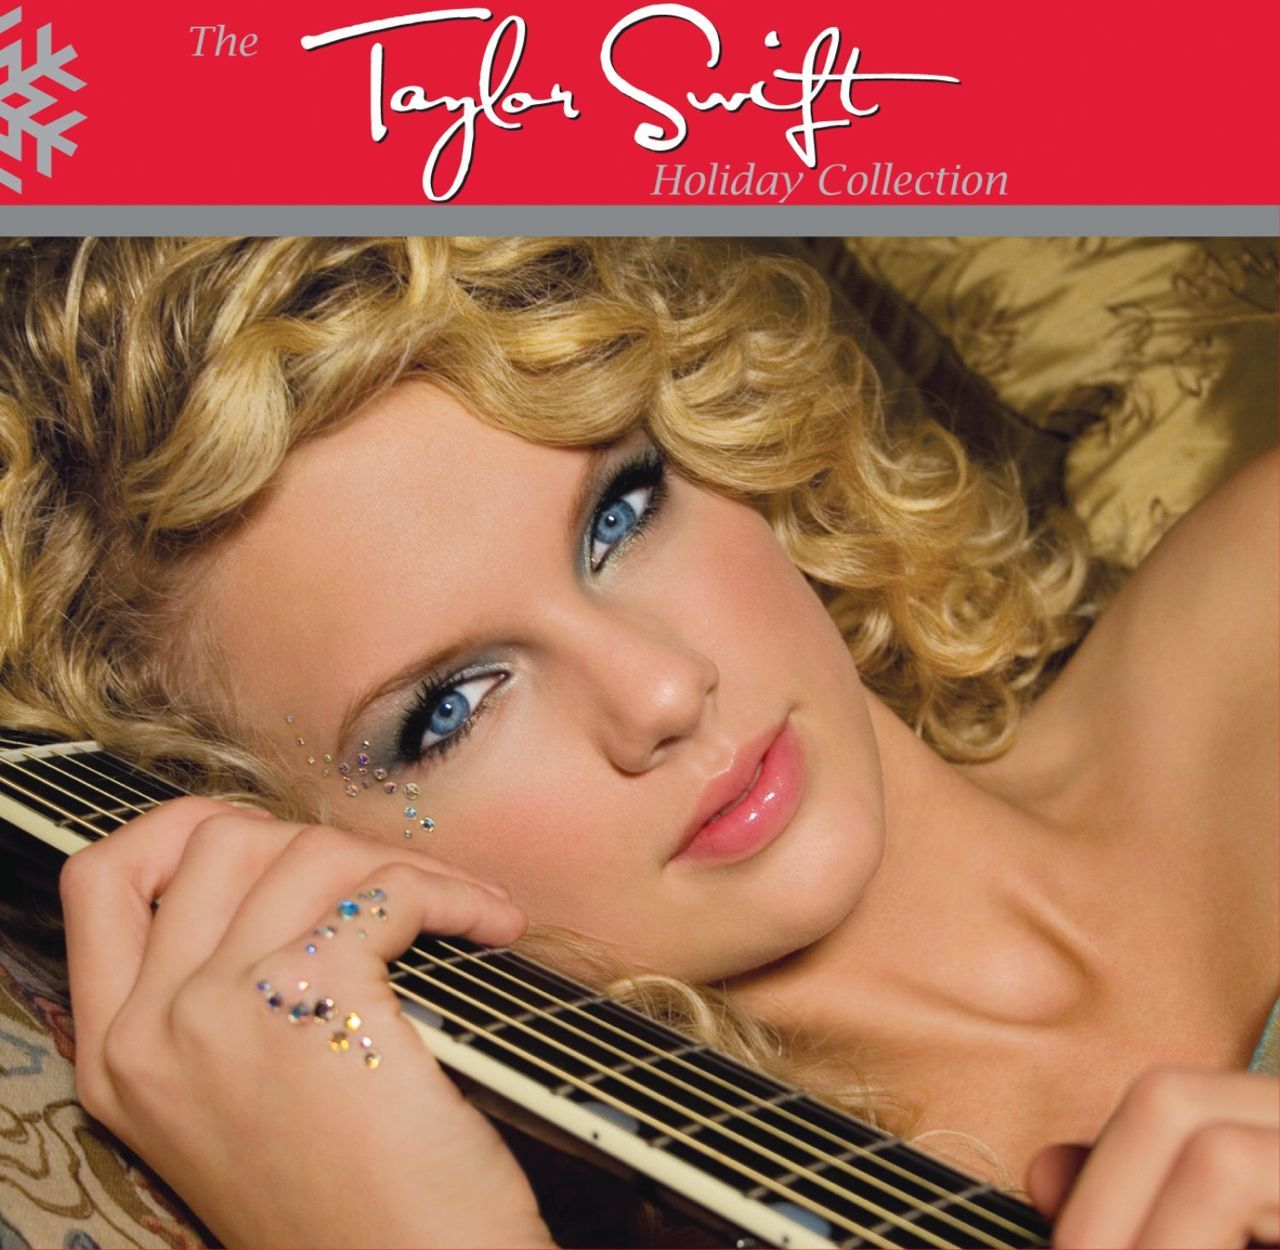 Taylor Swift - Sounds Of The Season: The Taylor Swift Holiday Collection album cover